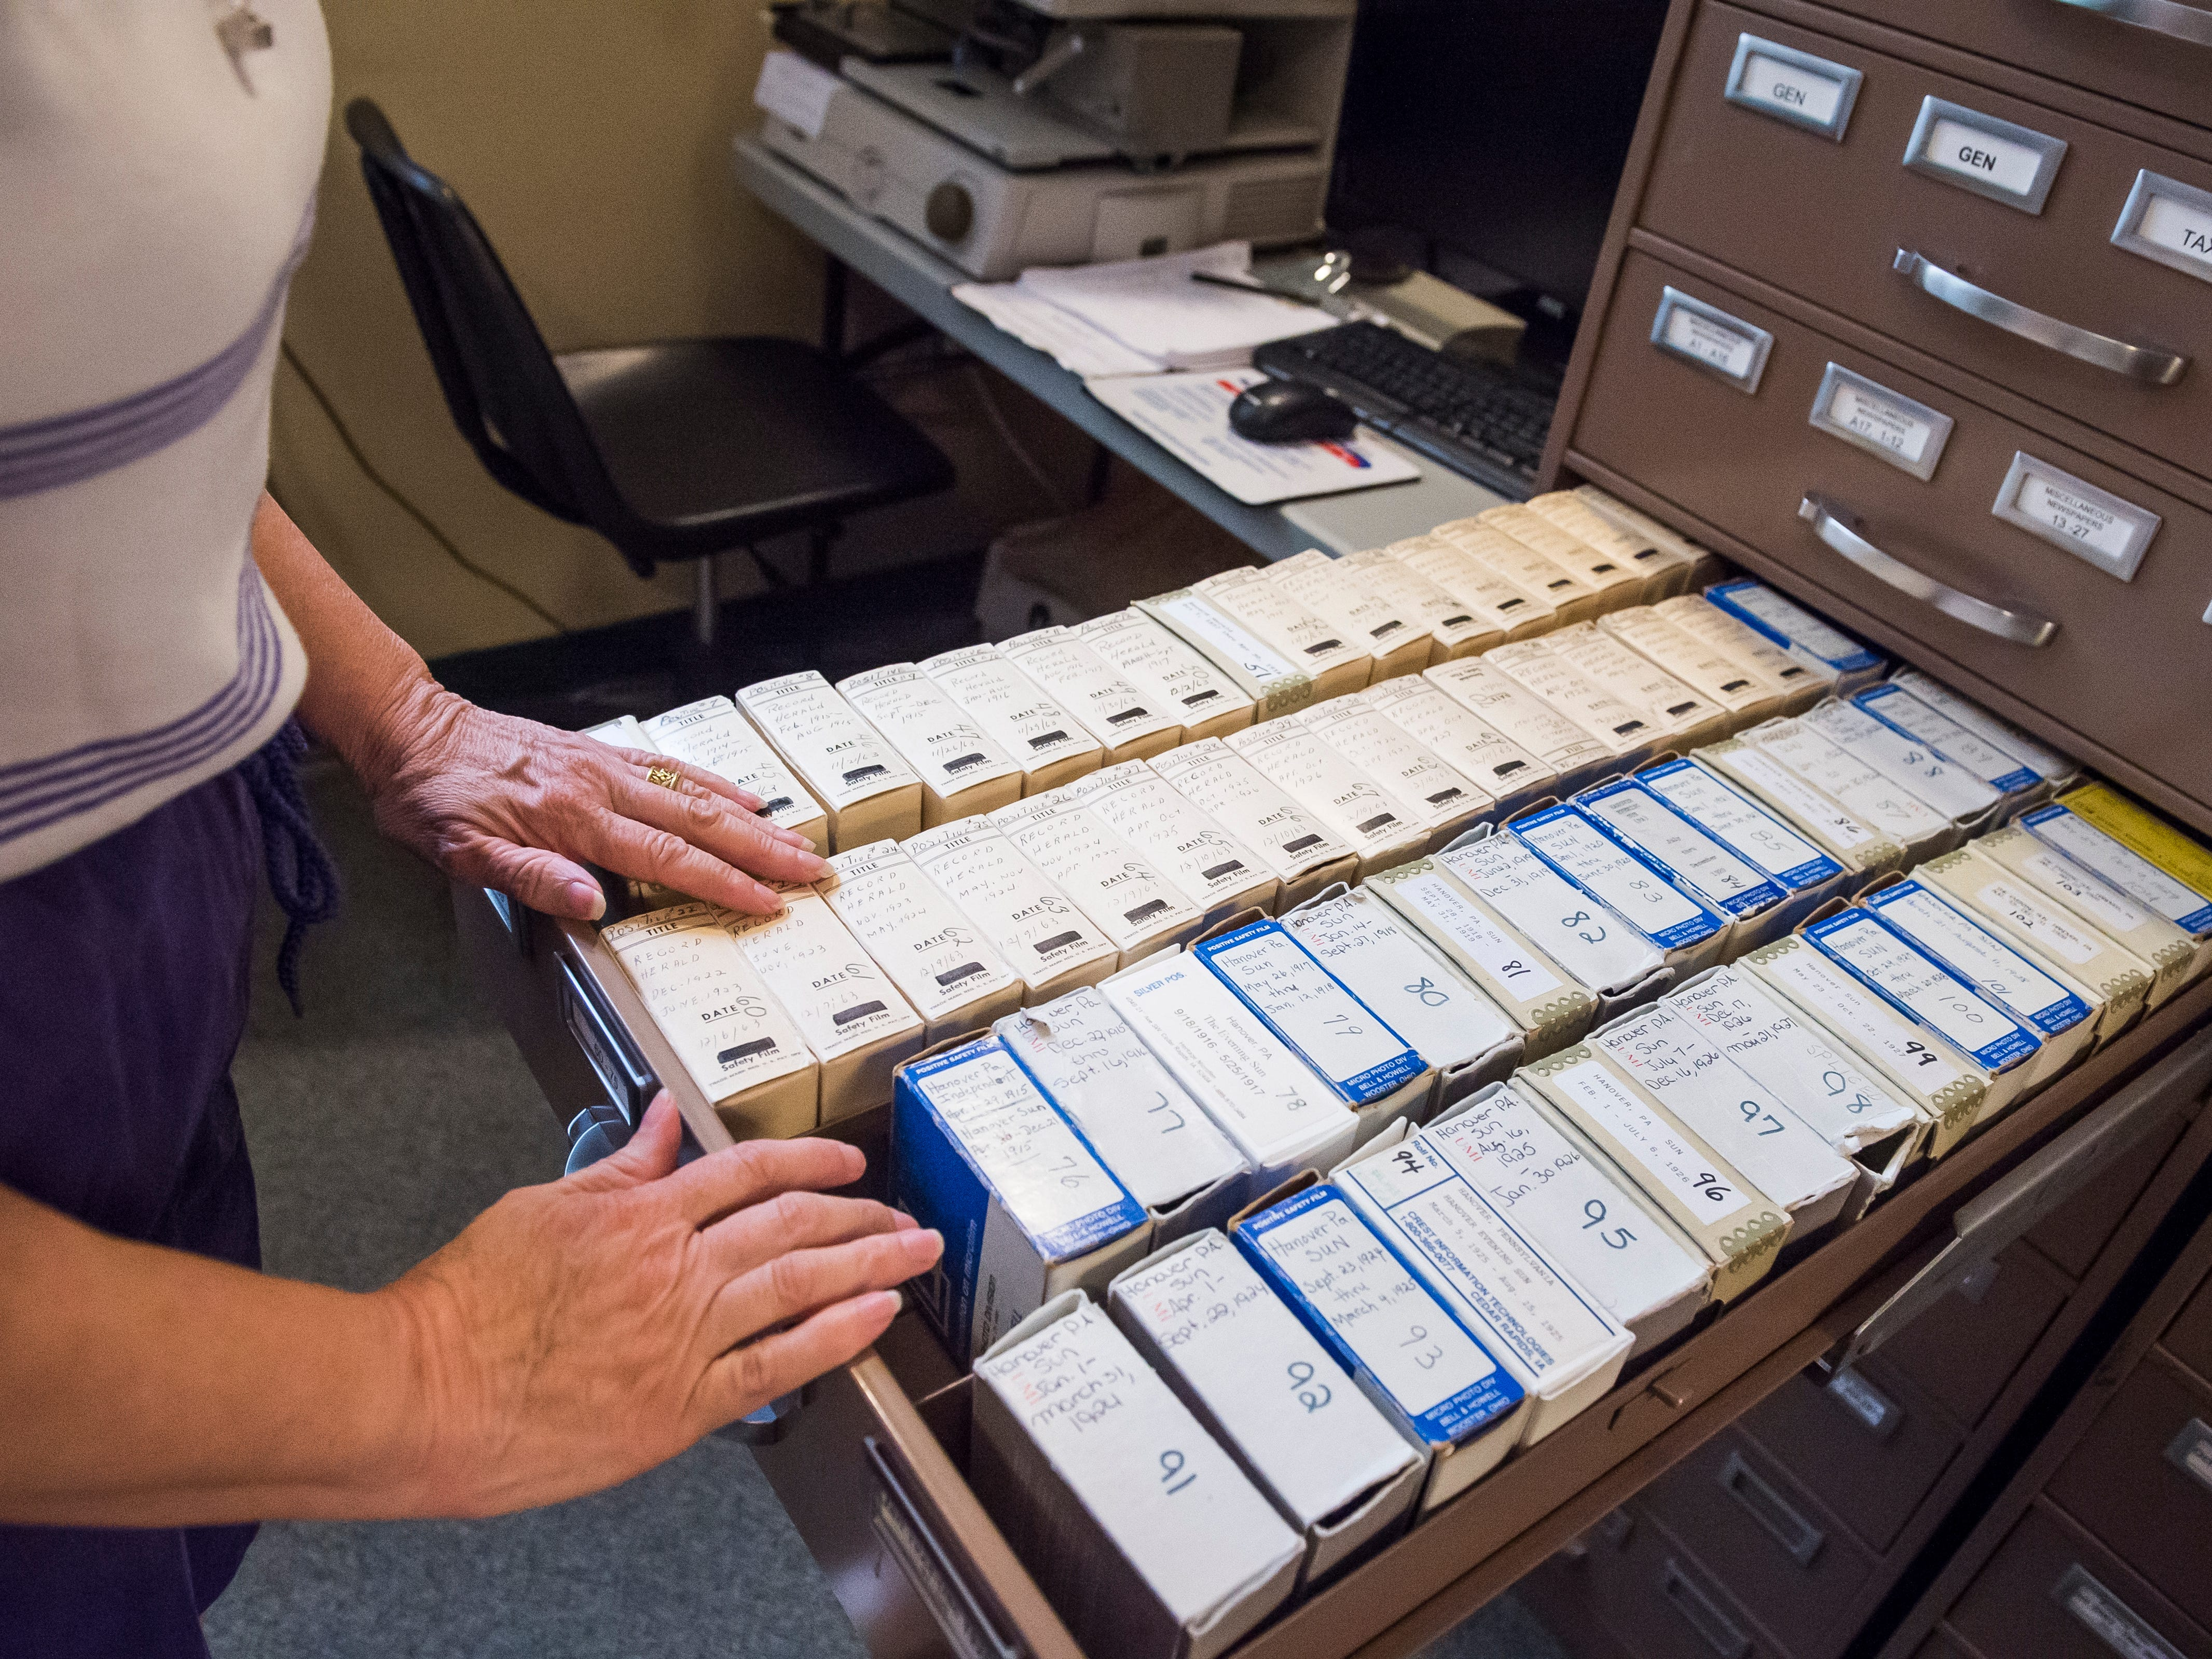 Wendy Bish-McGrew looks through a filing cabinet full of microfilm of Hanover newspapers going back as far as the 19th century at Guthrie Memorial Library.